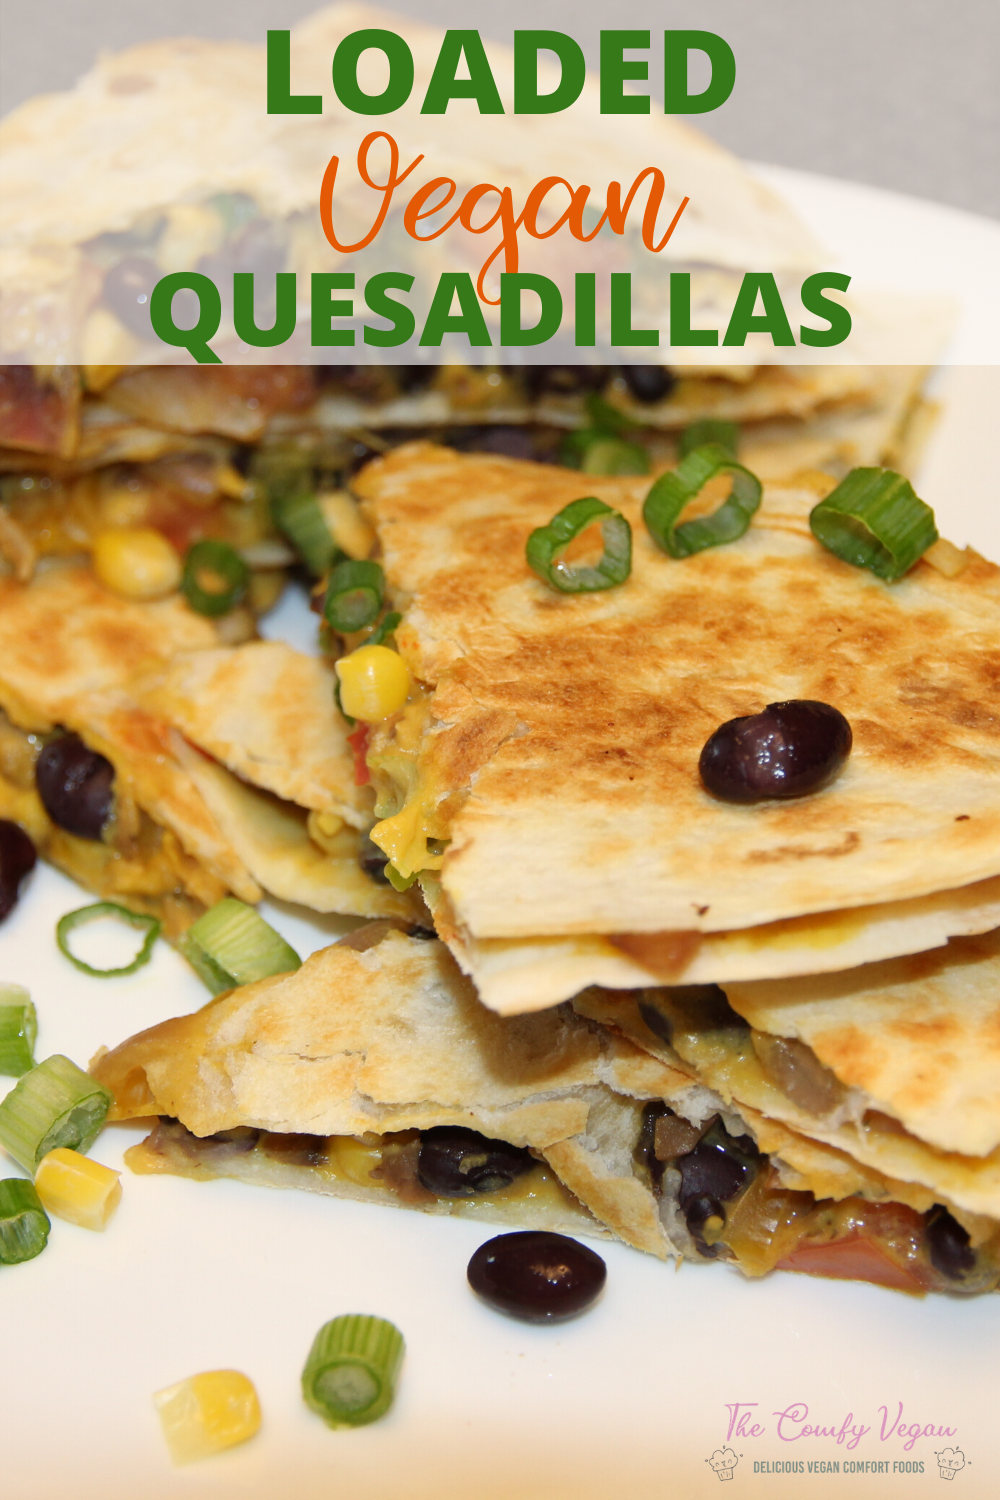 This Vegan Quesadilla Recipe is so simple and easy to make! With a few easy ingredients, you'll be chowing down in no time at all.